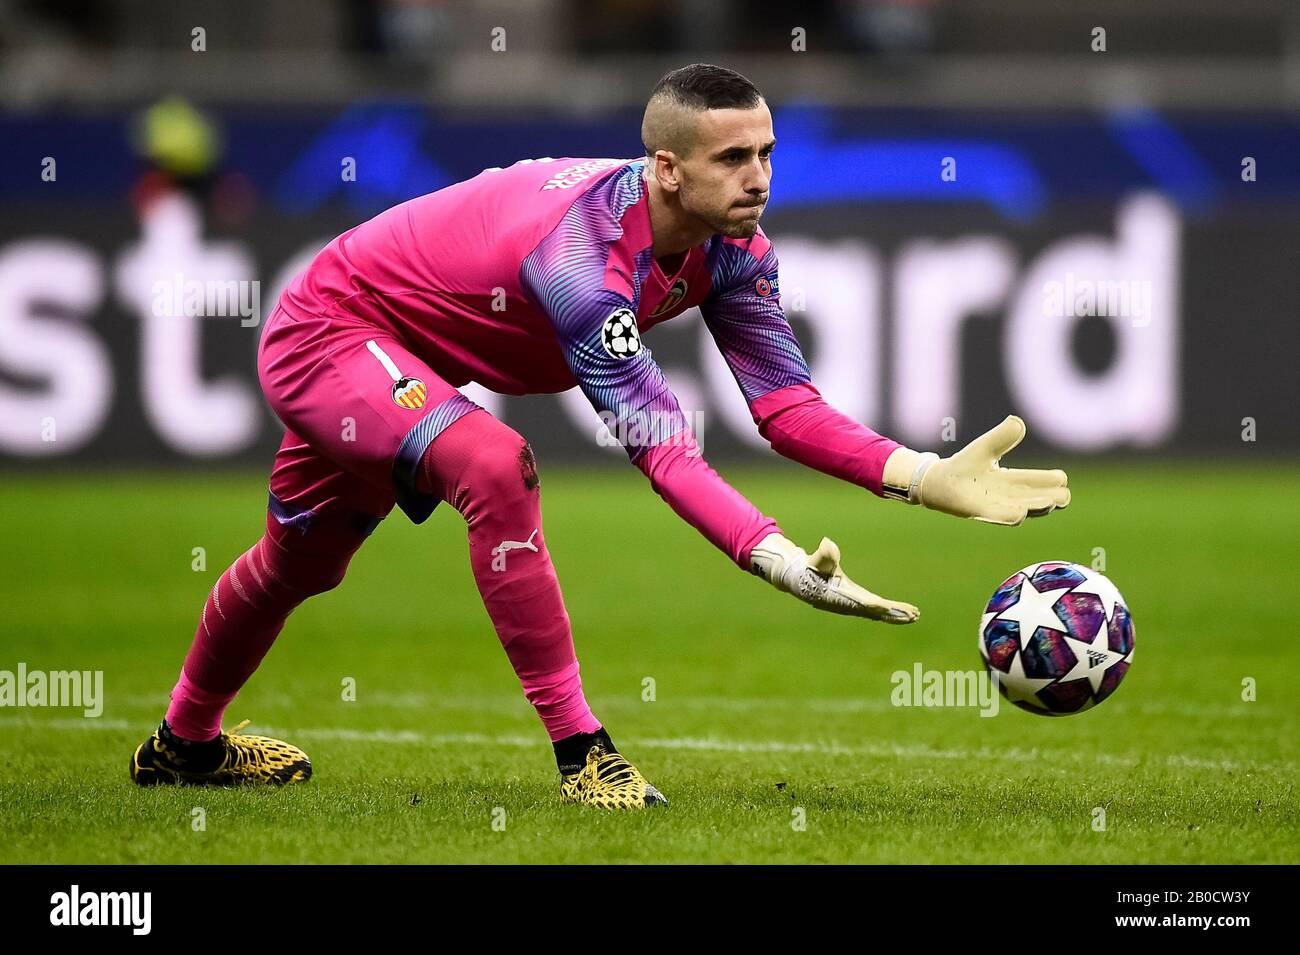 Milan Italy 19 February 2020 Jaume Domenech Of Valencia Cf In Action During The Uefa Champions